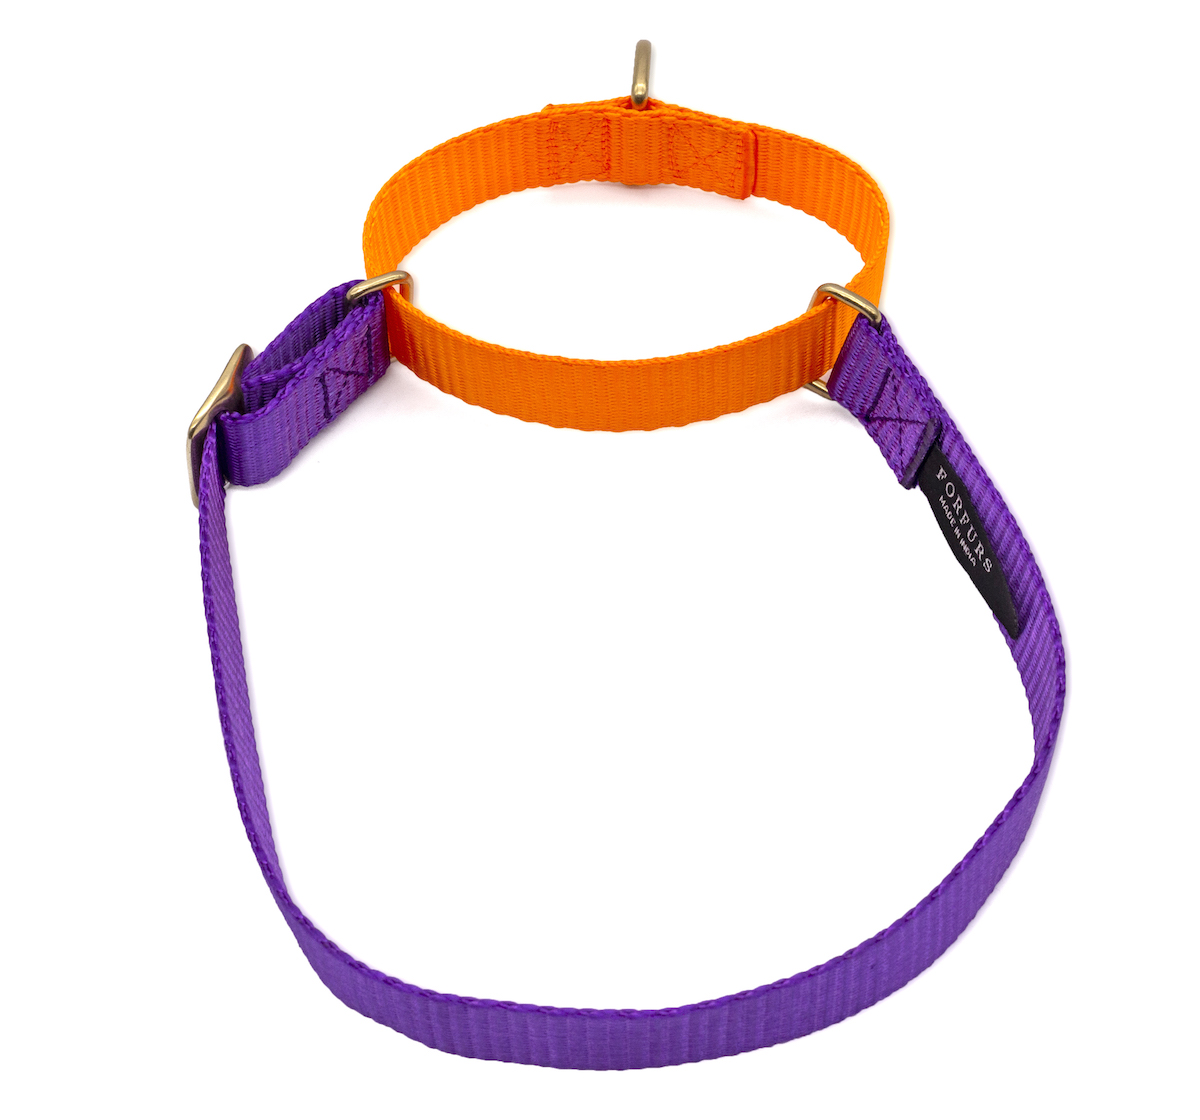 Forfurs Duo Martingale Collar Ultra Violet & Neon Orange - Small